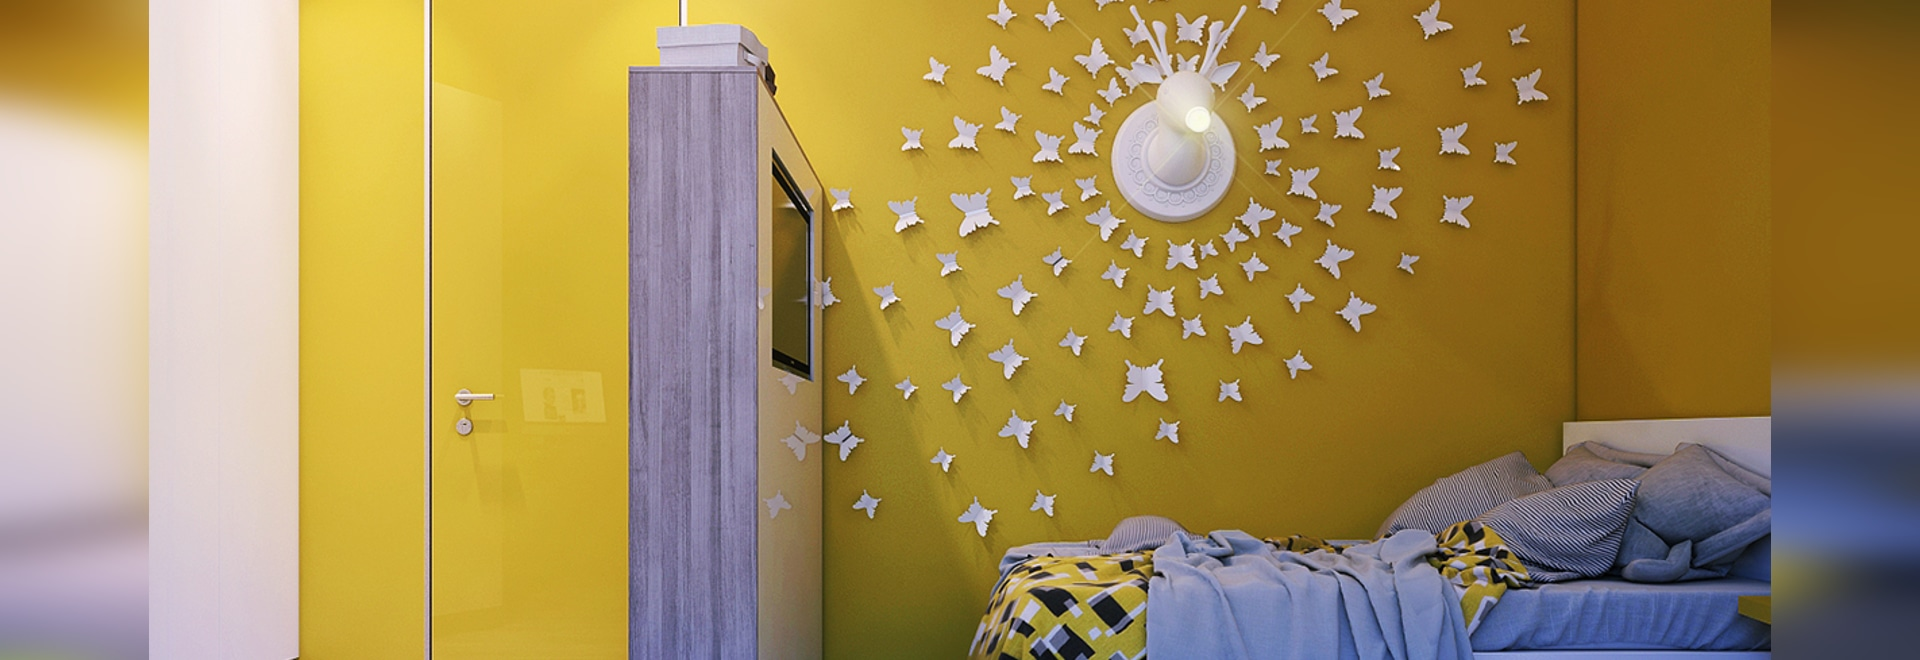 Clever Kids Room Wall Decor Ideas & Inspiration - Russia